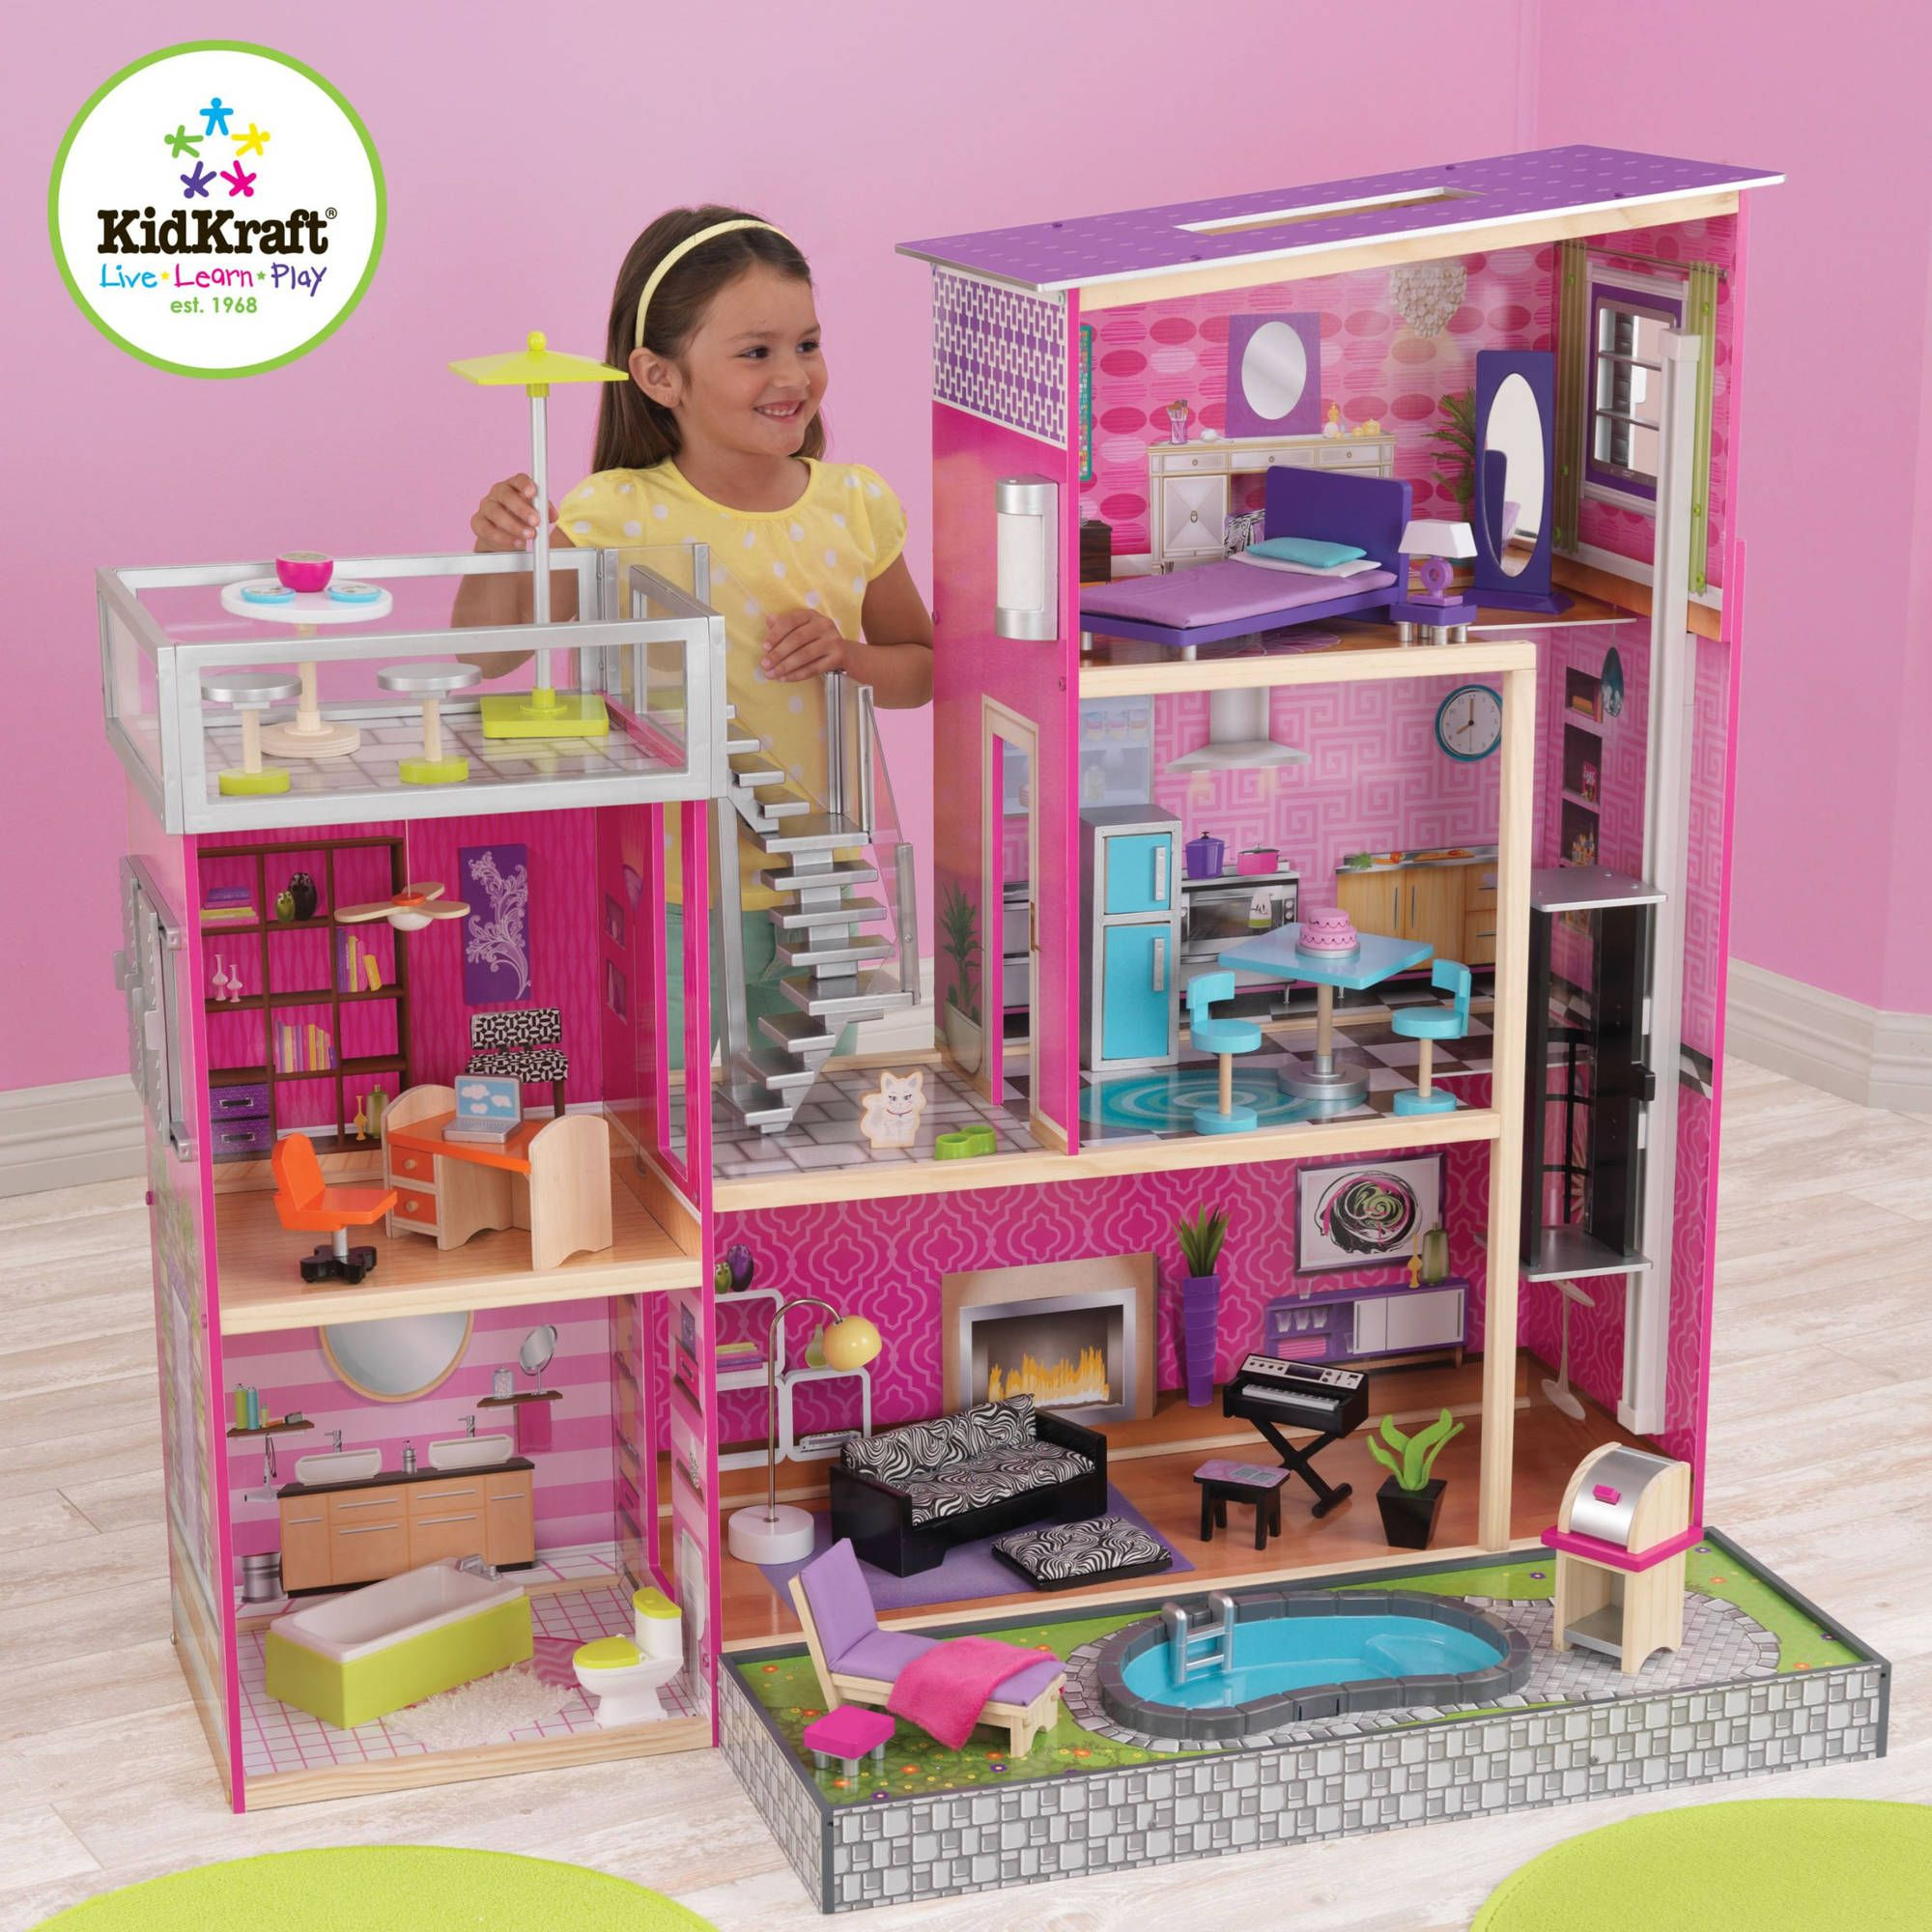 Free Shipping Buy Kidkraft Uptown Wooden Dollhouse With 35 Pieces Of Furniture At Walmart Com Kids Doll House Barbie Doll House Wooden Dollhouse